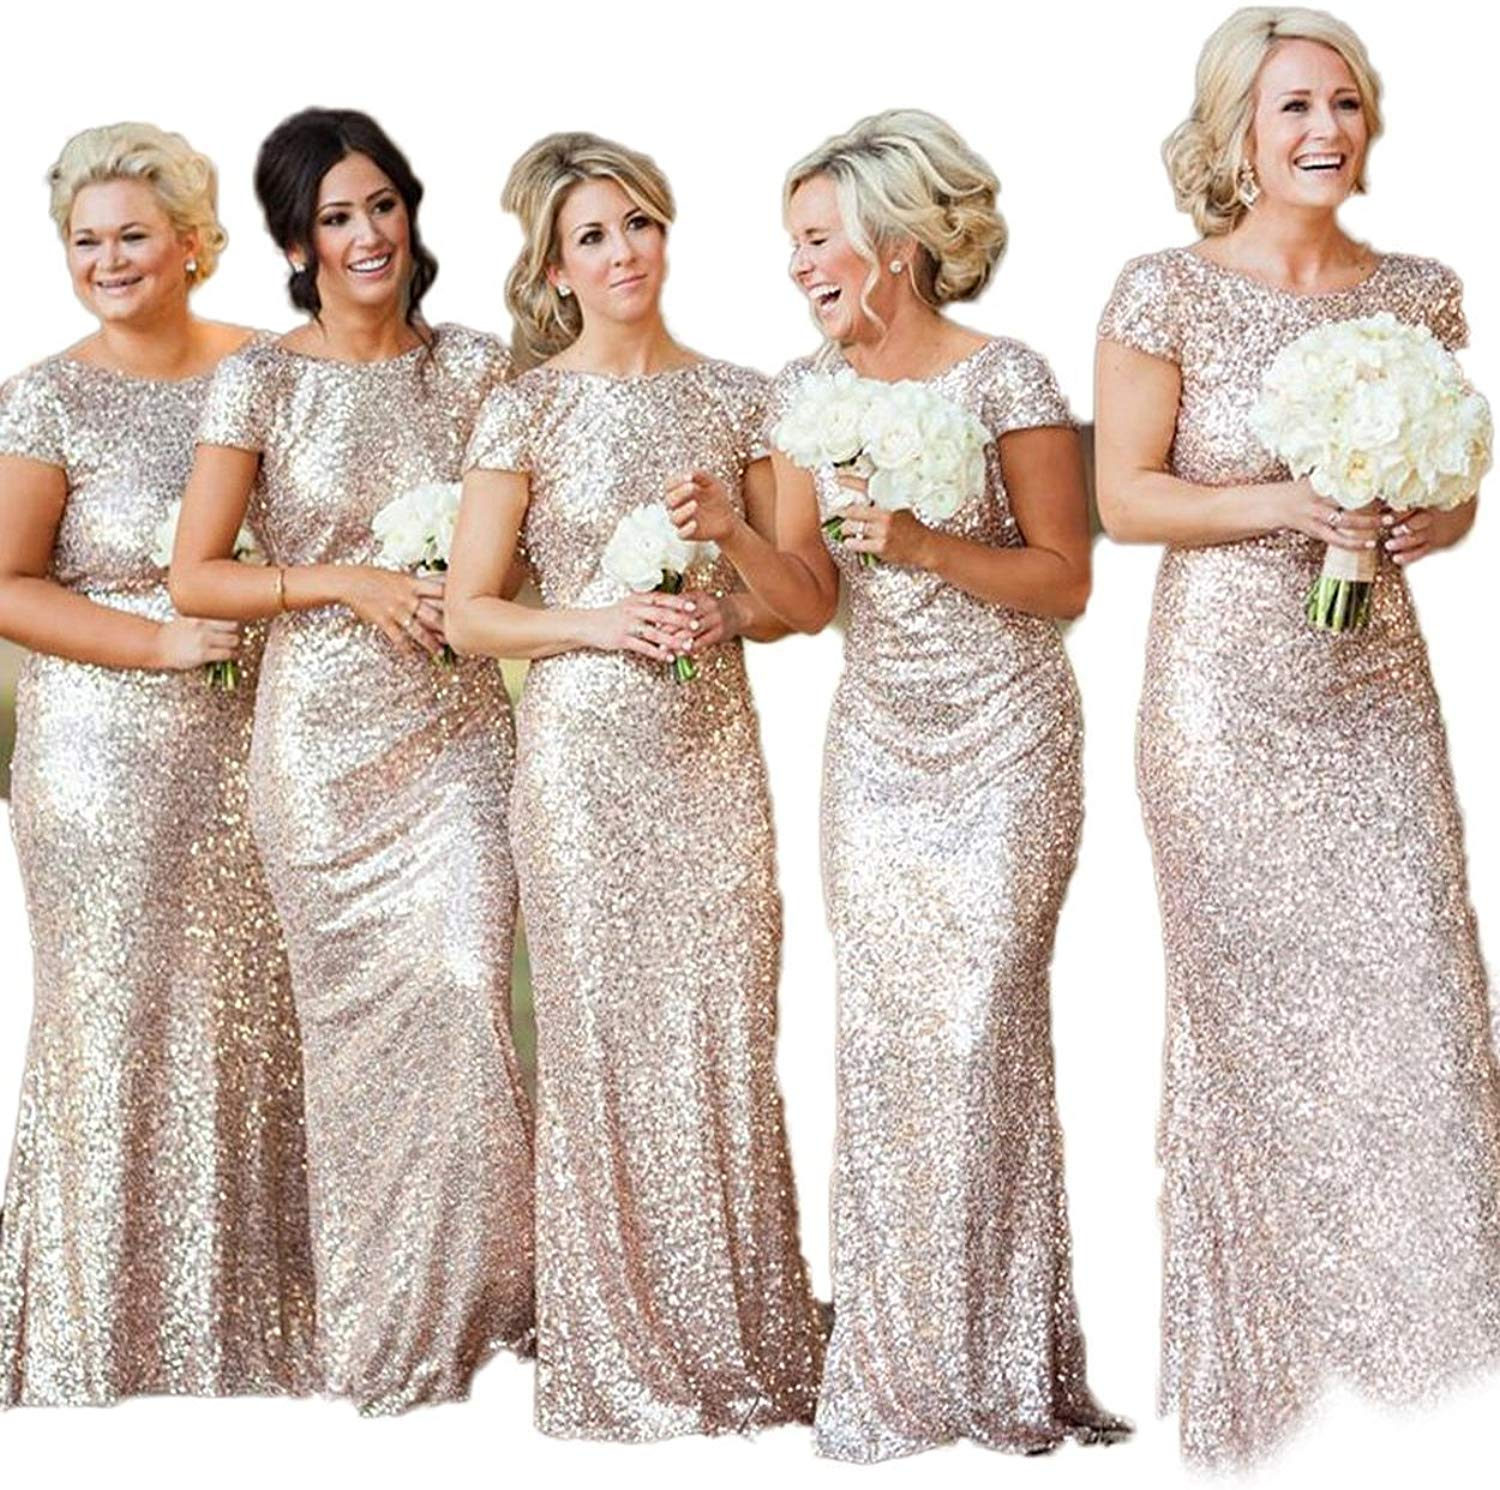 Bling Sequins High Neck Long Bridesmaid Dresses Sheath Prom Dresses Maid Of Honor Dresses Formal Evening Gowns Party Dress